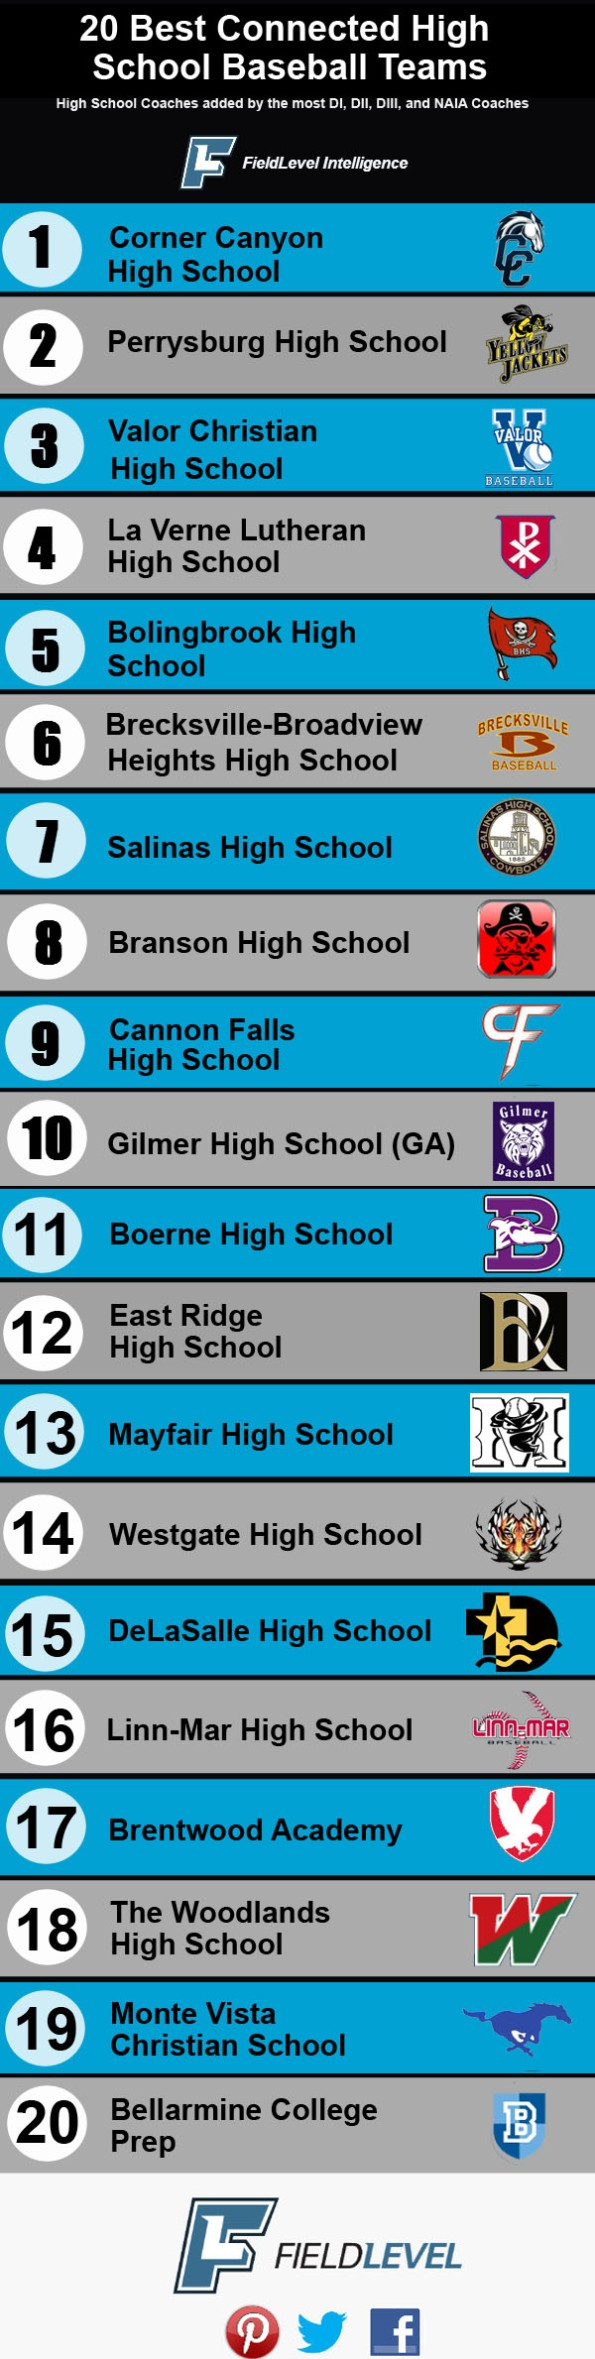 Top20 HighSchools- November